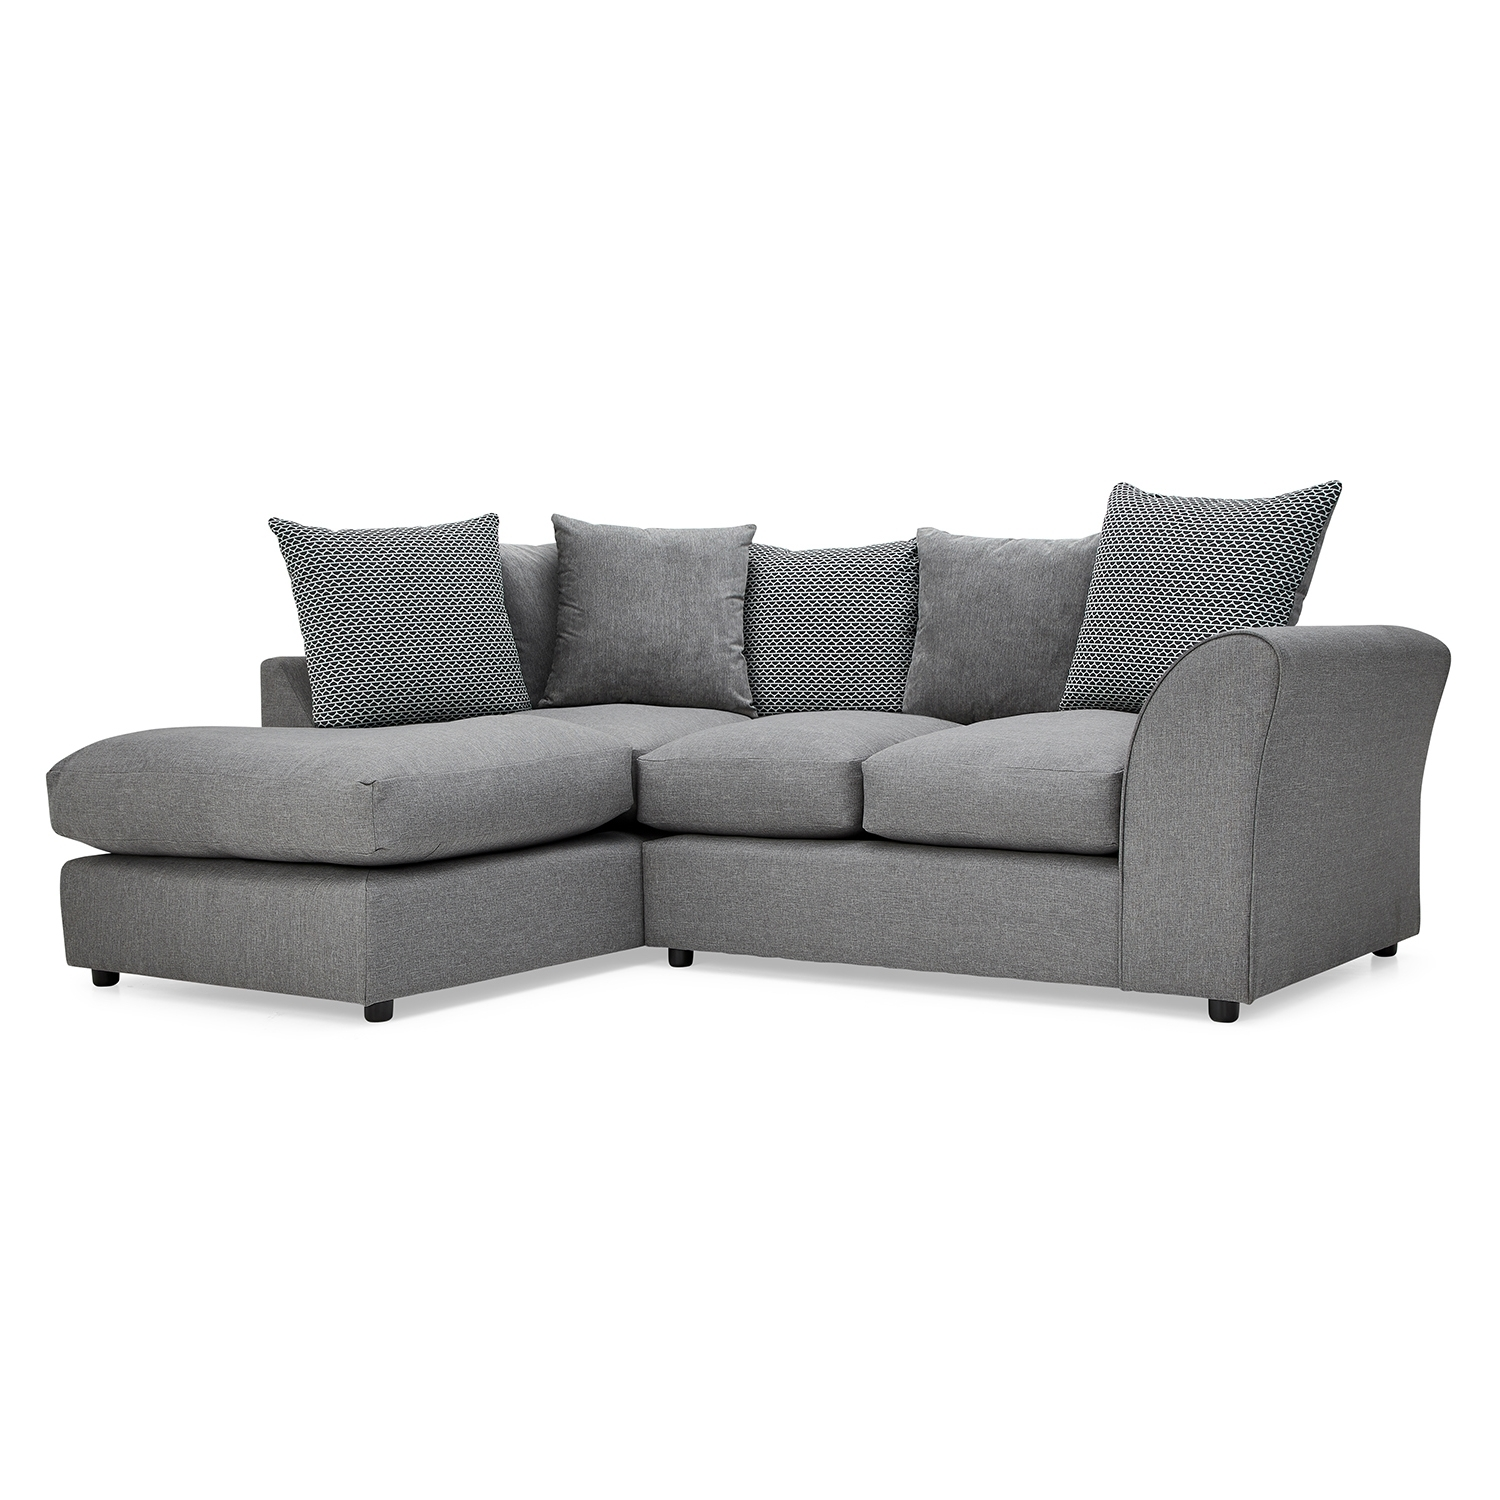 Seattle Fabric Corner Sofa – Next Day Delivery Seattle Fabric Corner In Fabric Corner Sofas (View 9 of 10)